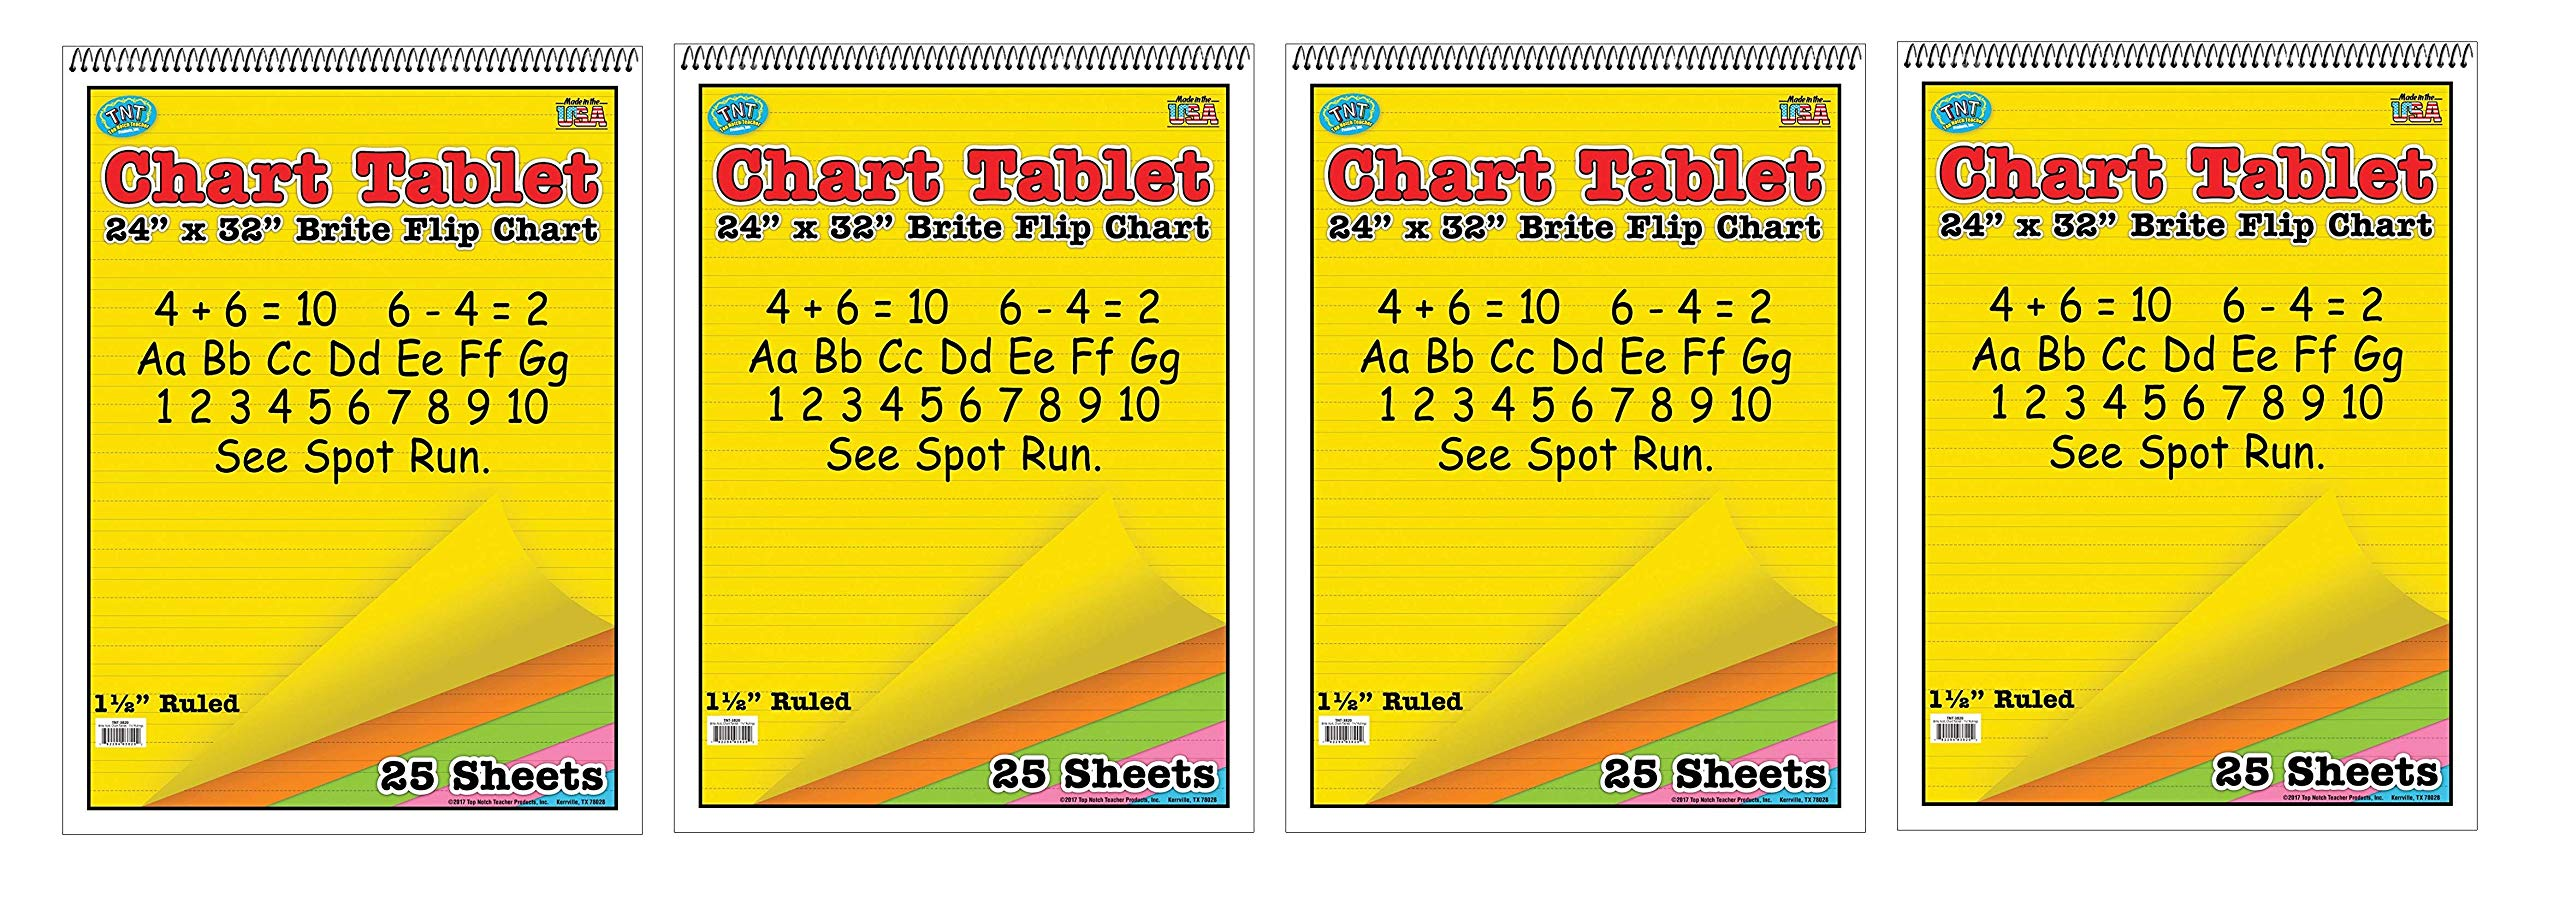 Top Notch Teaching TOP3820 Brite Chart Tablet, 1-1/2'' Ruled, Assorted Colors, 24'' Width, 32'' Length, 25 Sheets (Fоur Paсk) by Top Notch Teaching